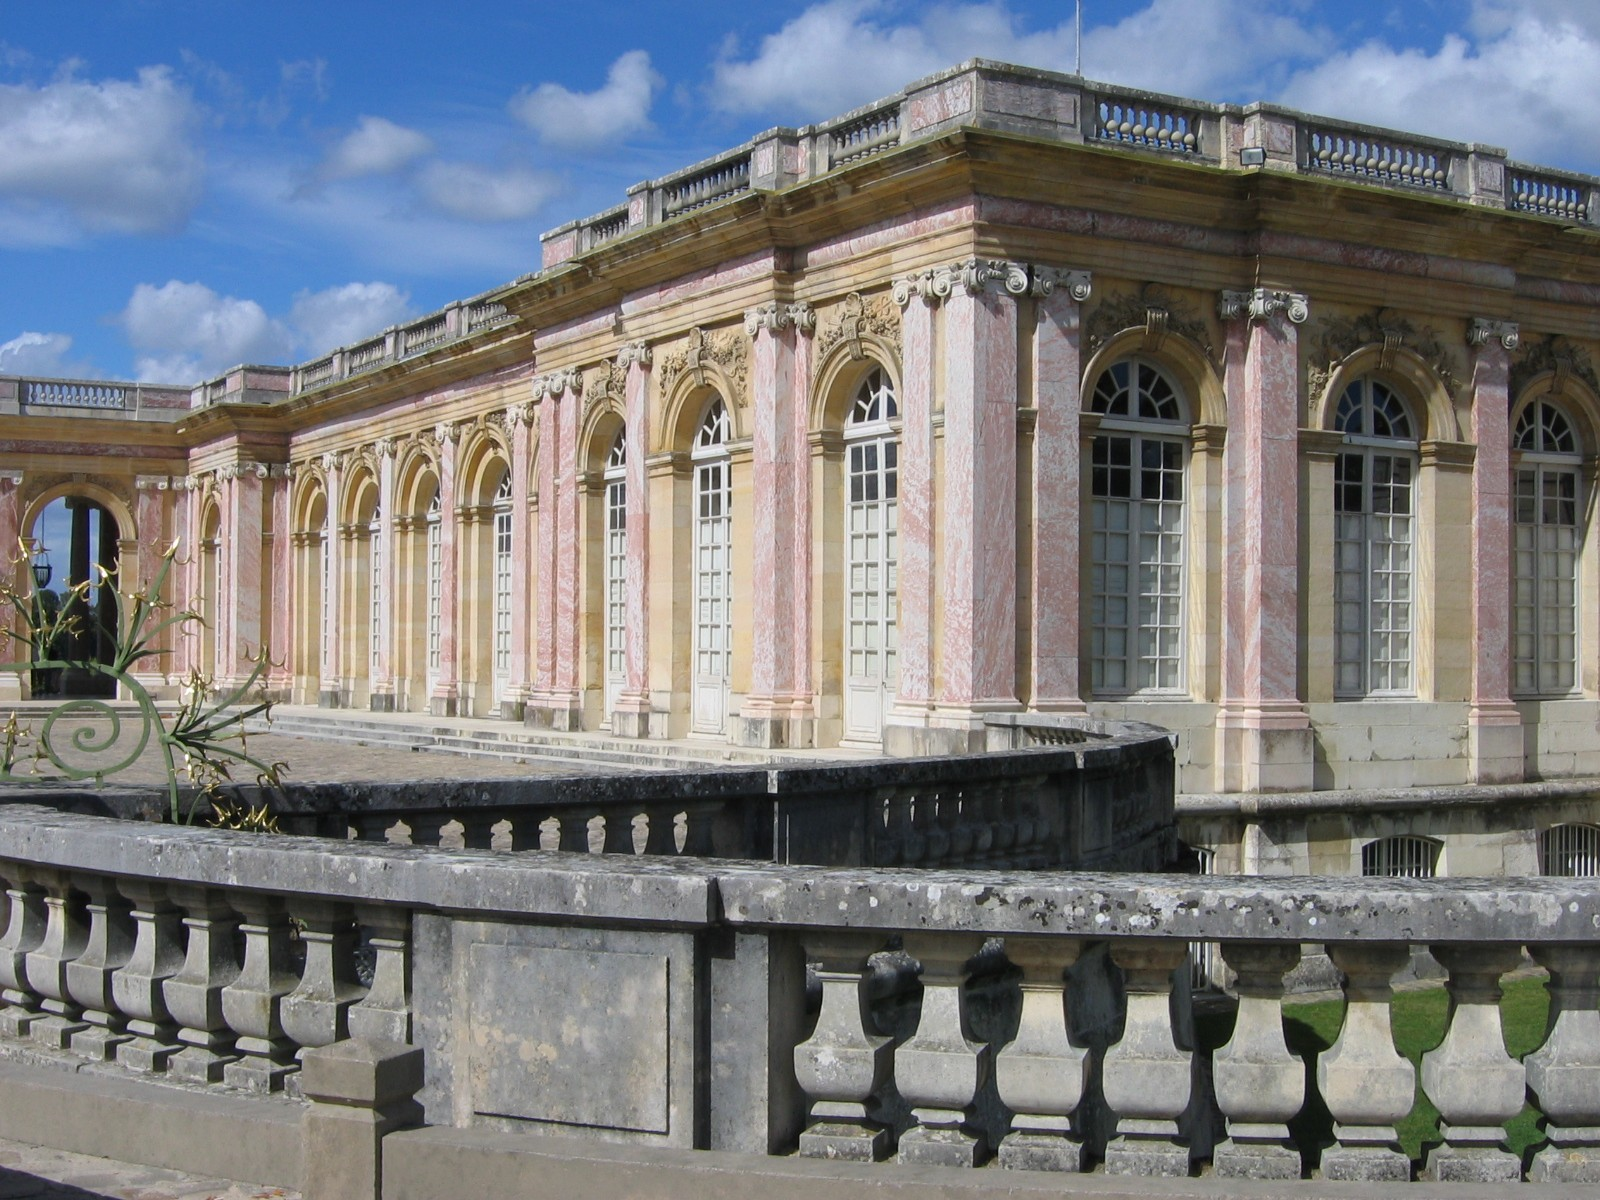 The Palace of Trianon